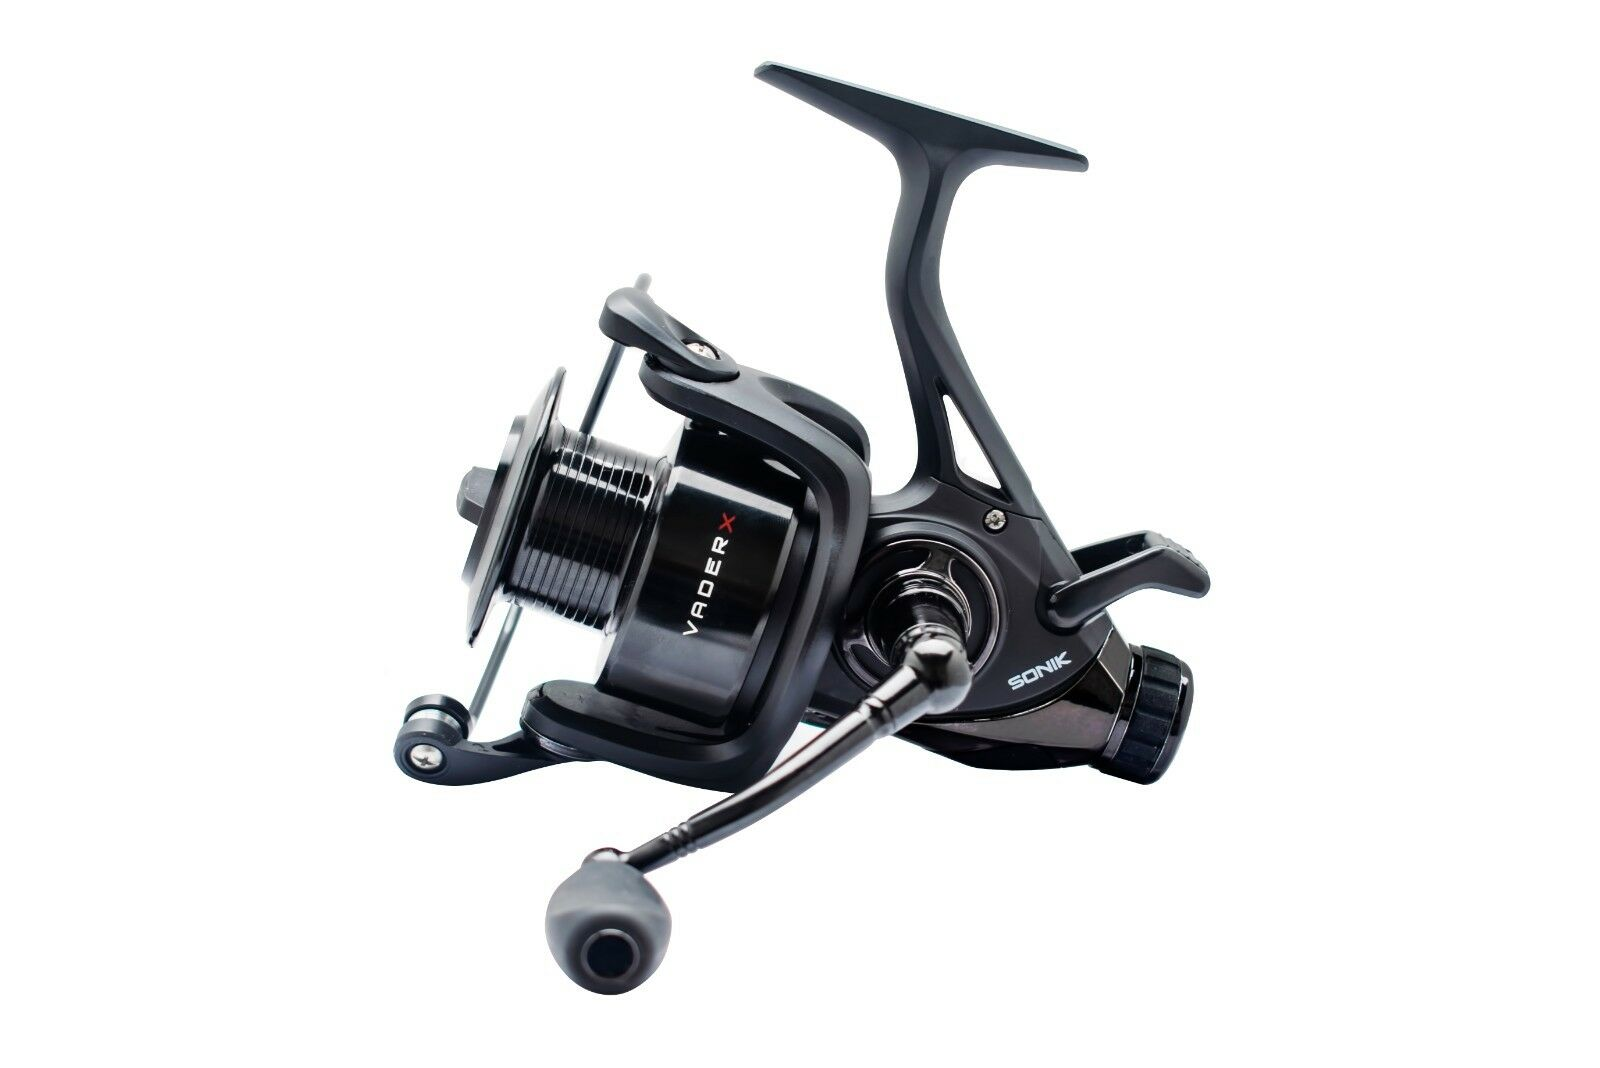 Sonik Vader X 6000FS Free Spool Carp and Barbel Fishing Reel plus Spare Spool